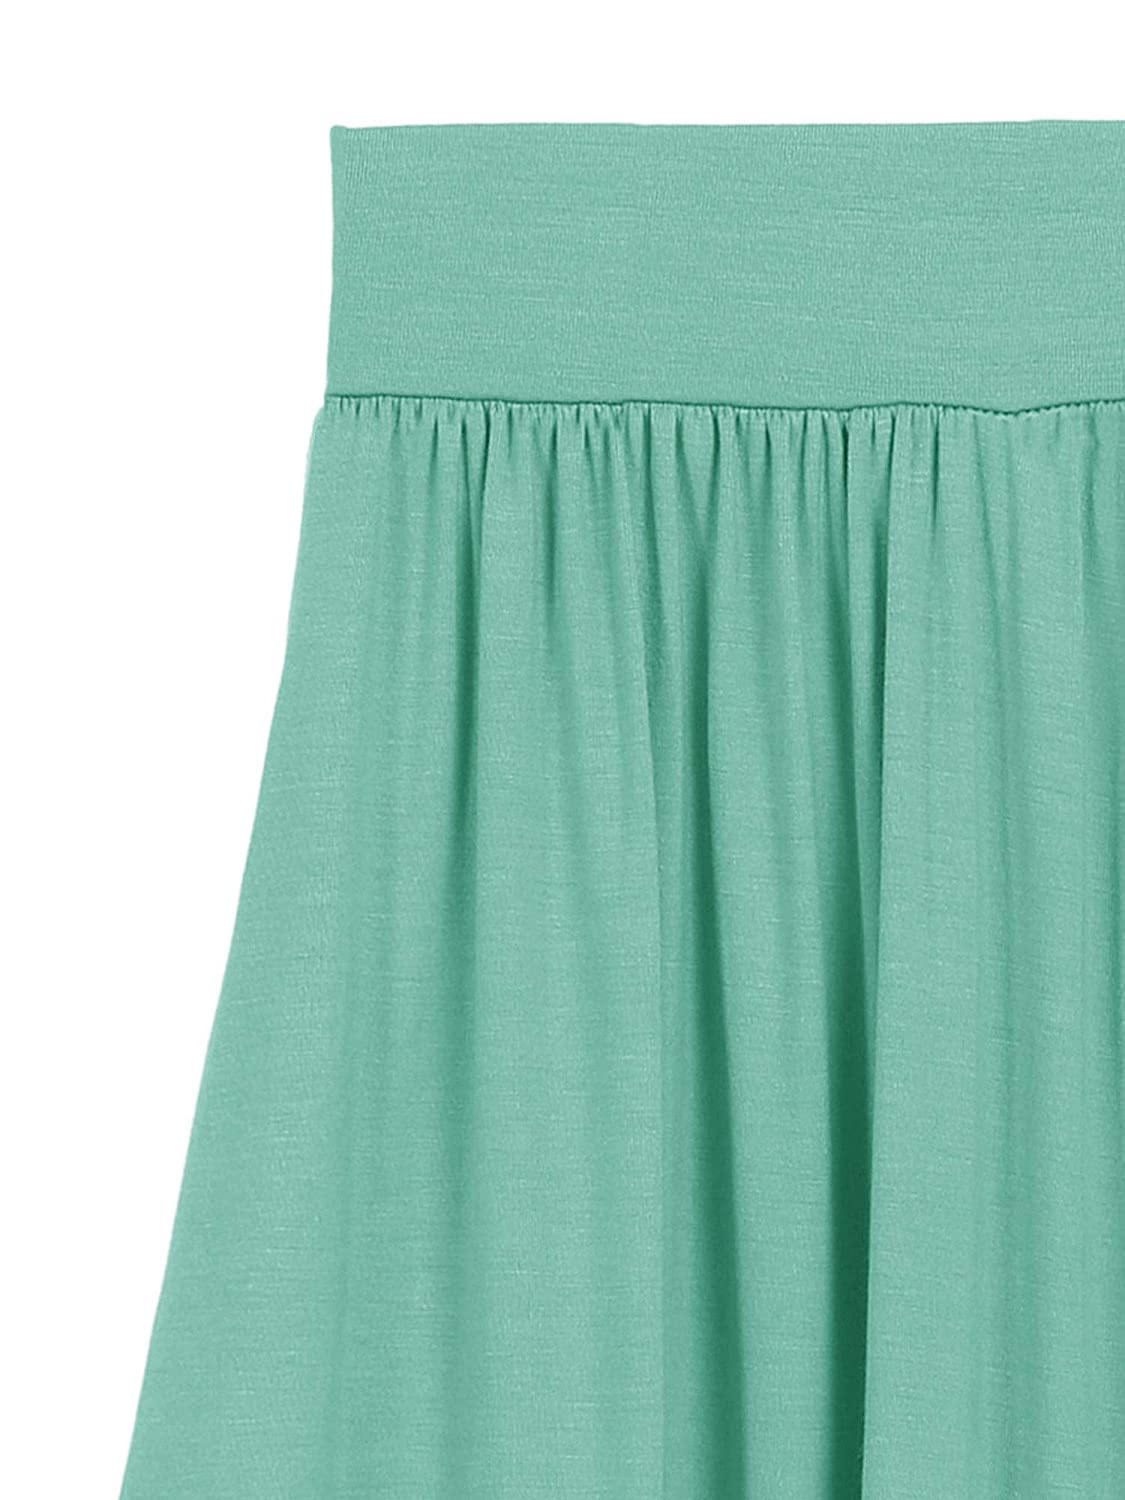 Fashion California Girls 7-16 Years Poly Solid High Low Skirt with Pockets S-XL